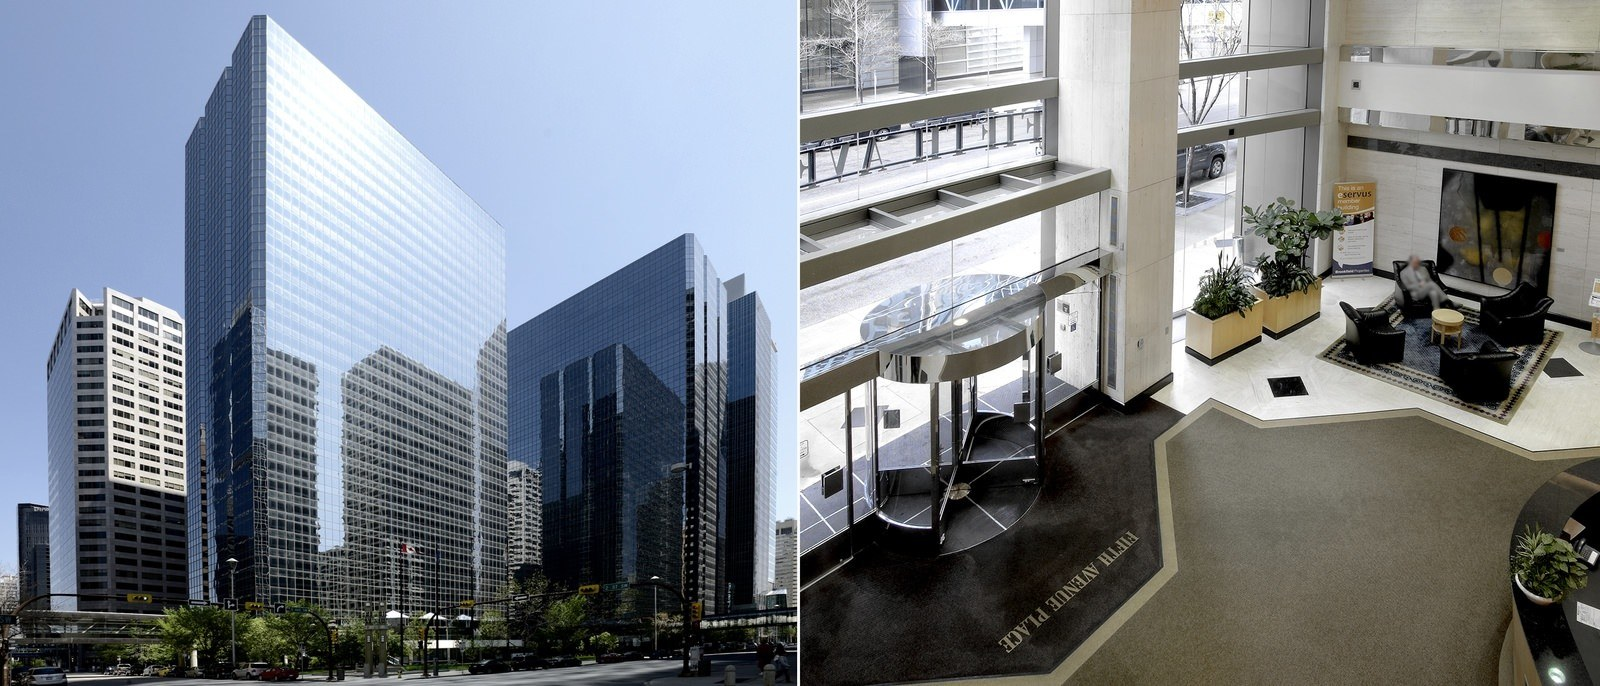 Exterior view of a large building and an interior view looking down on a black and white lobby,